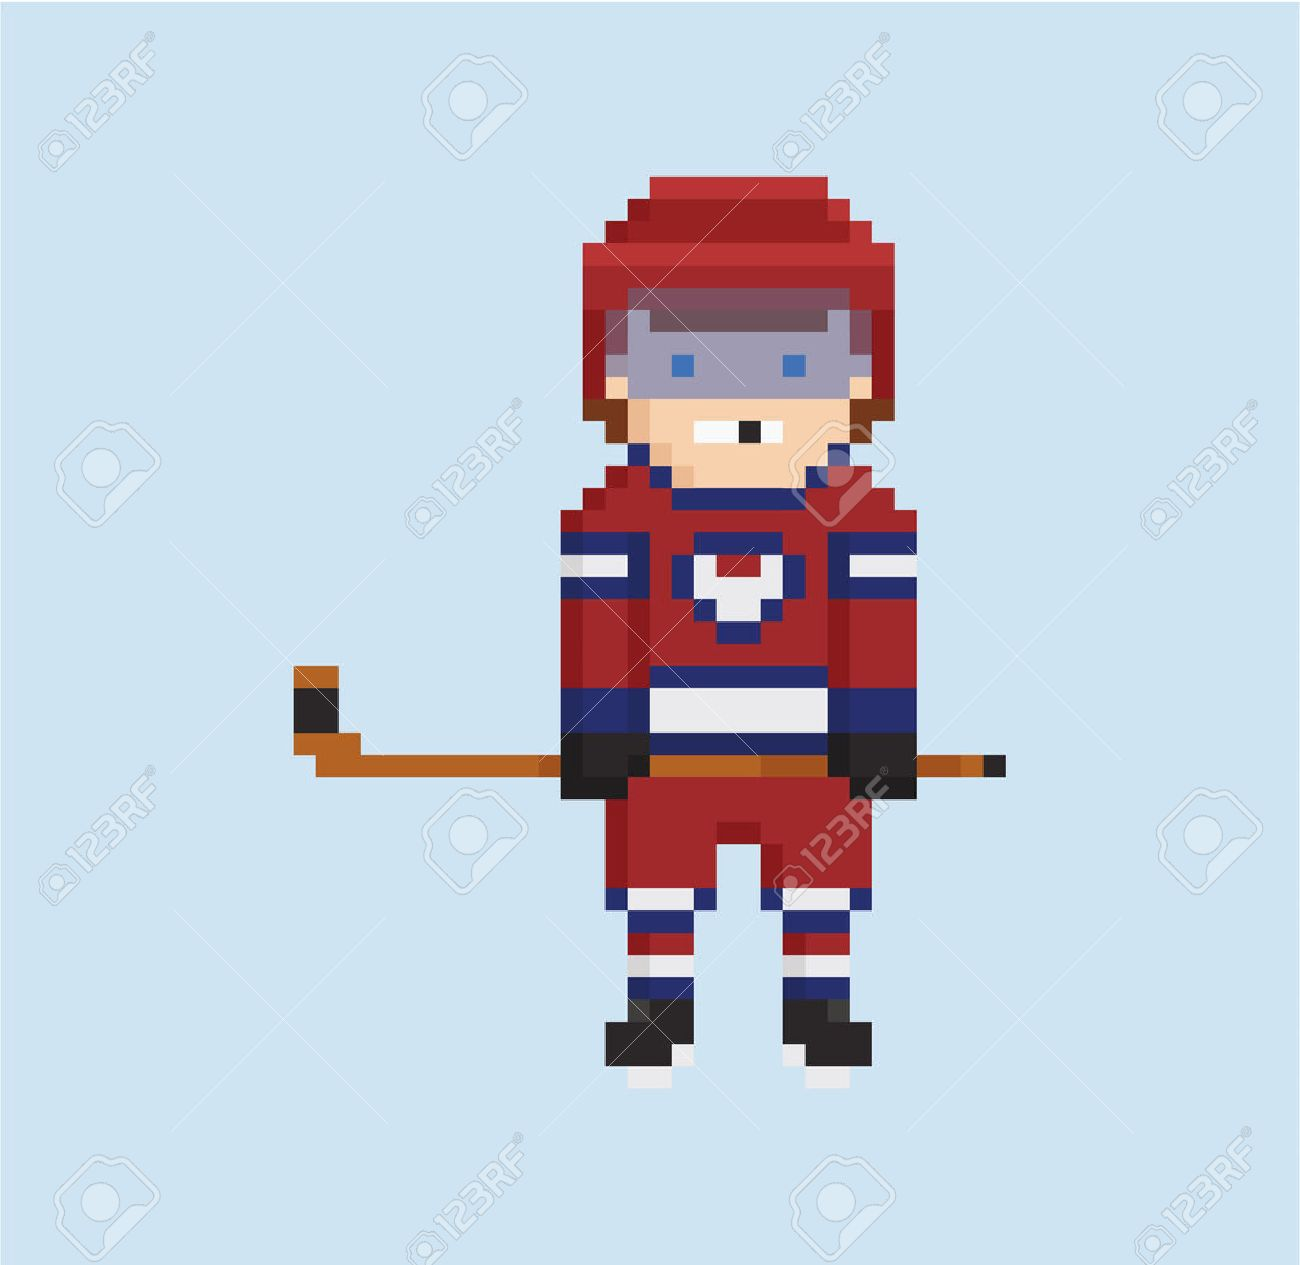 Pixel Art Style Illustration Shows Hockey Player In Red White